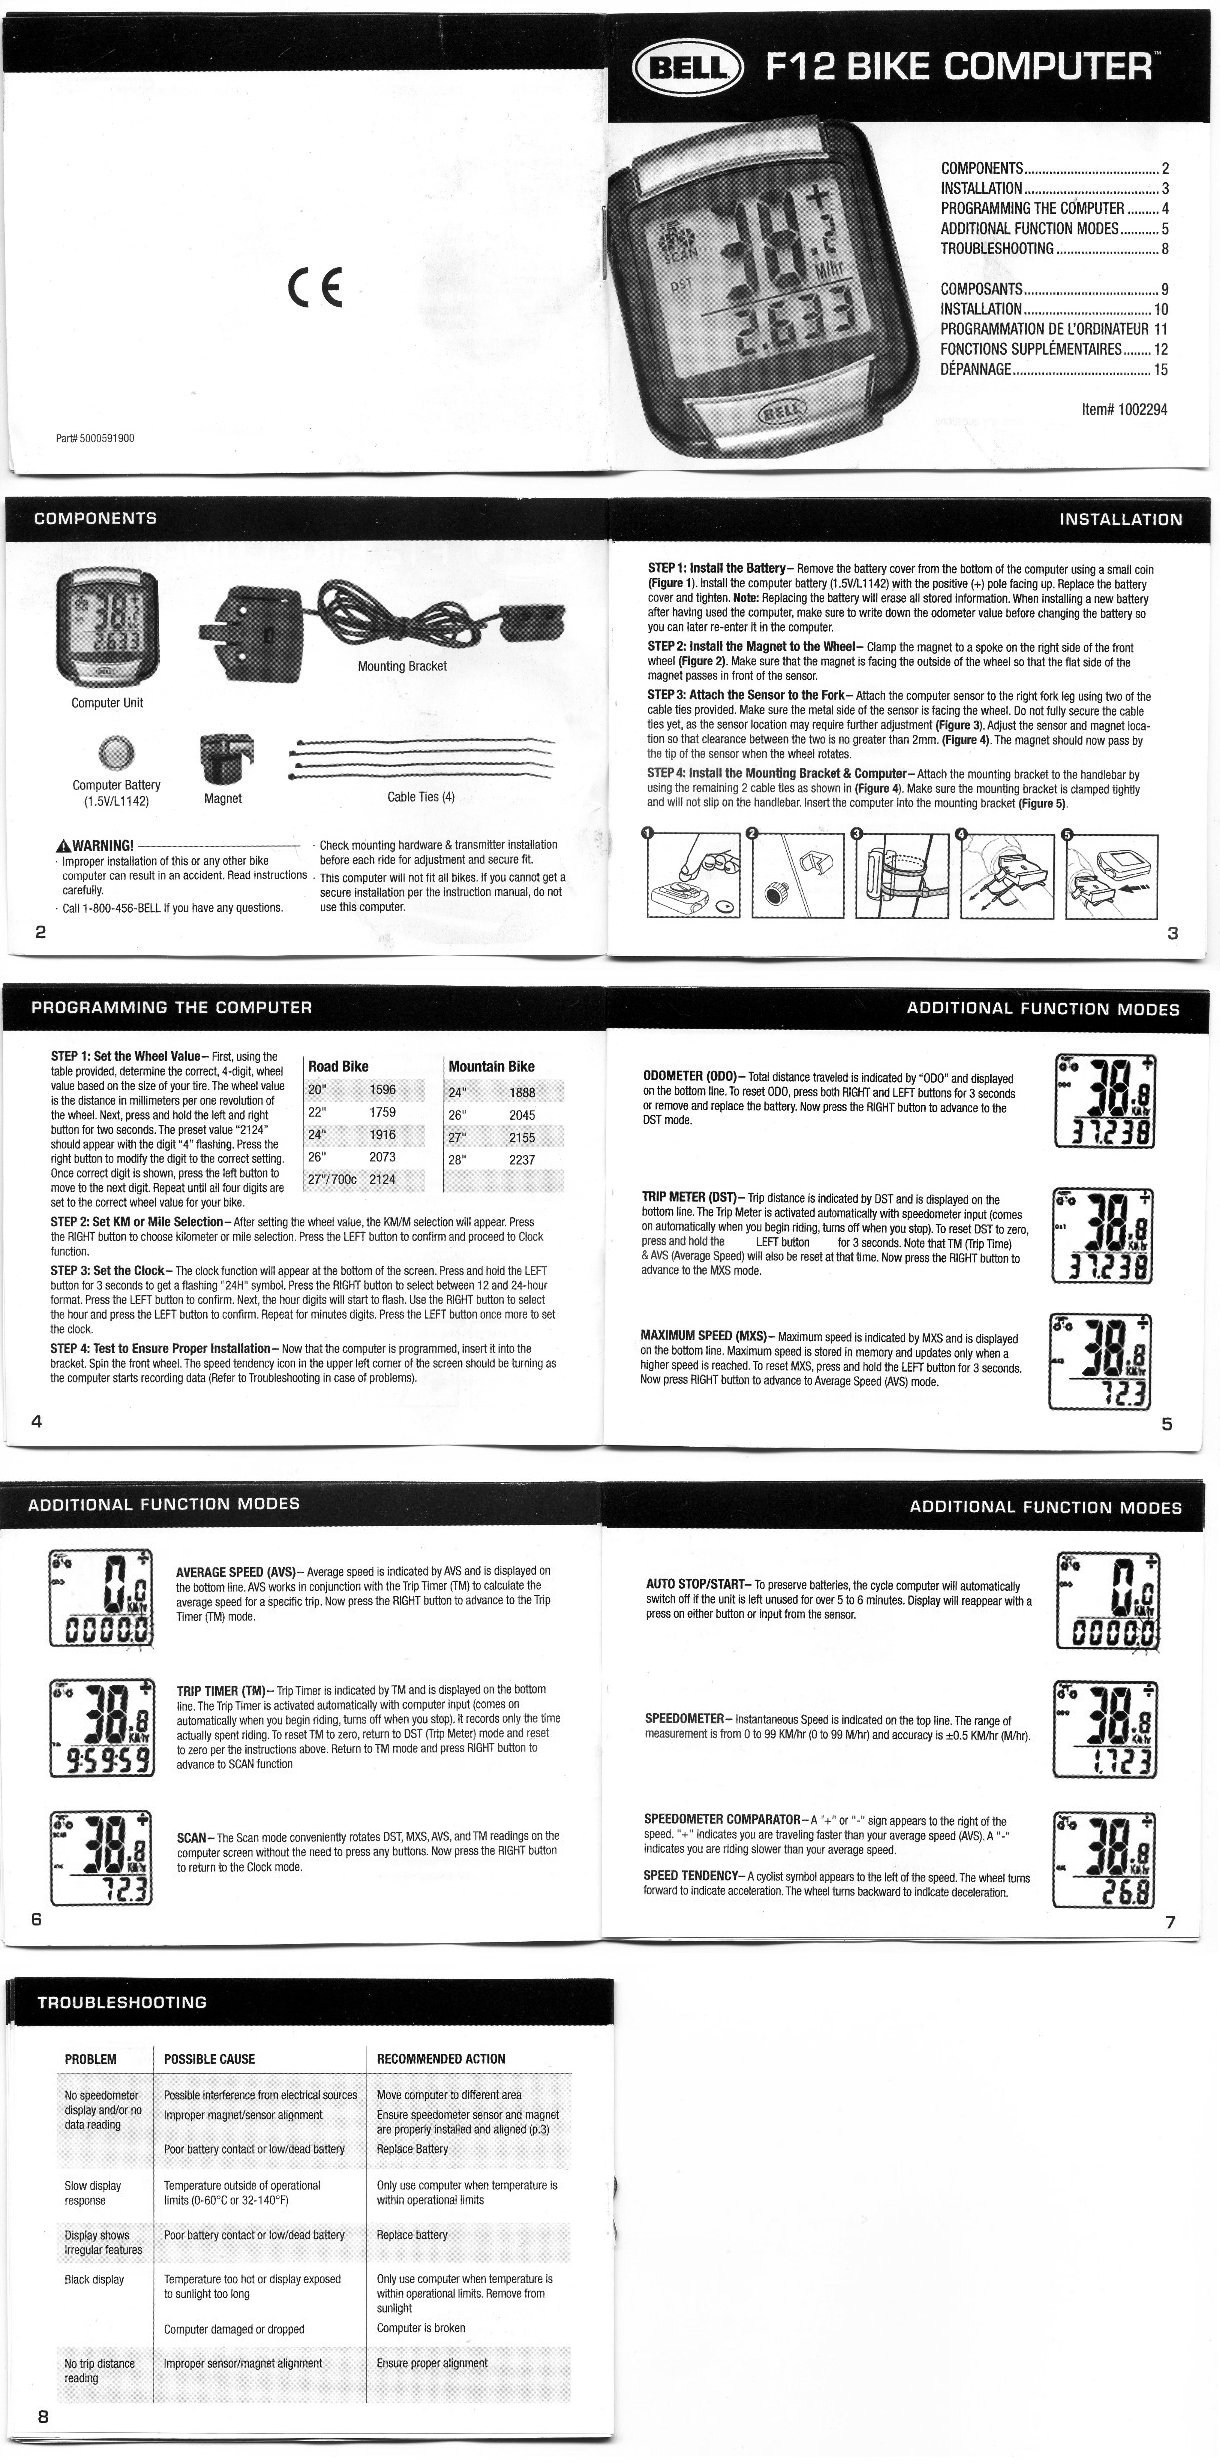 Sigma sport 500 instructions